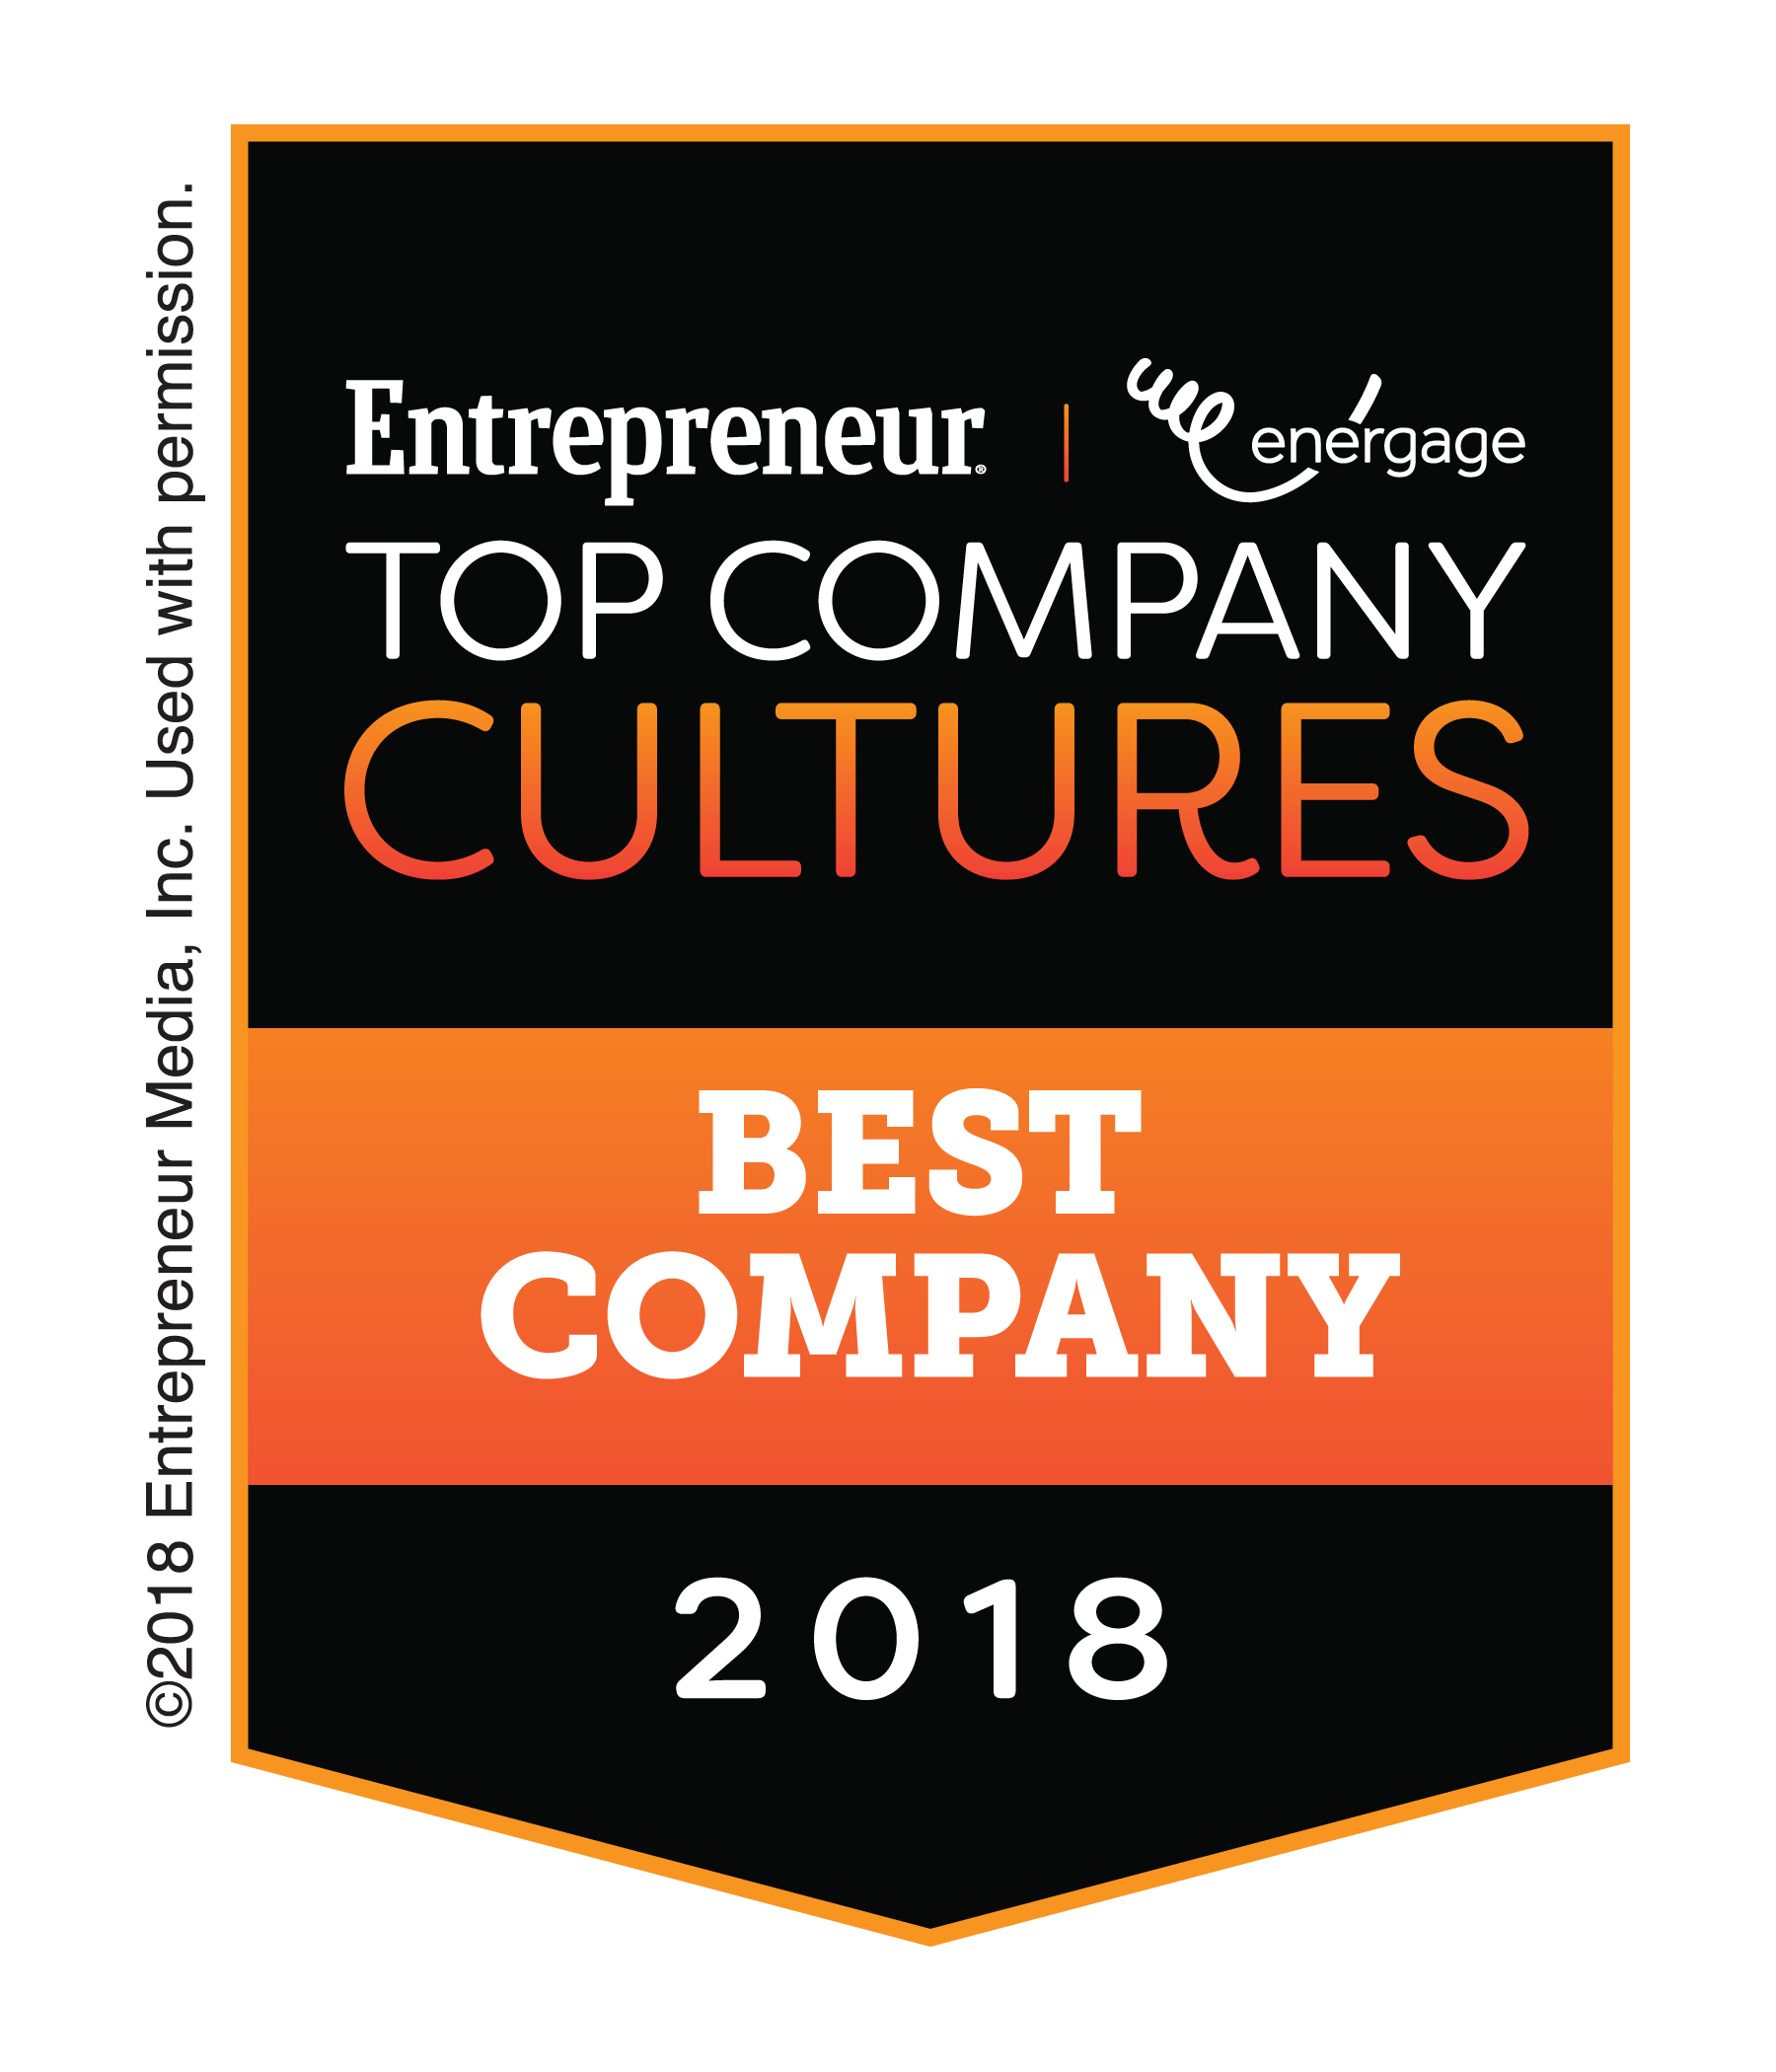 Entrepreneur Top Company Cultures 2018